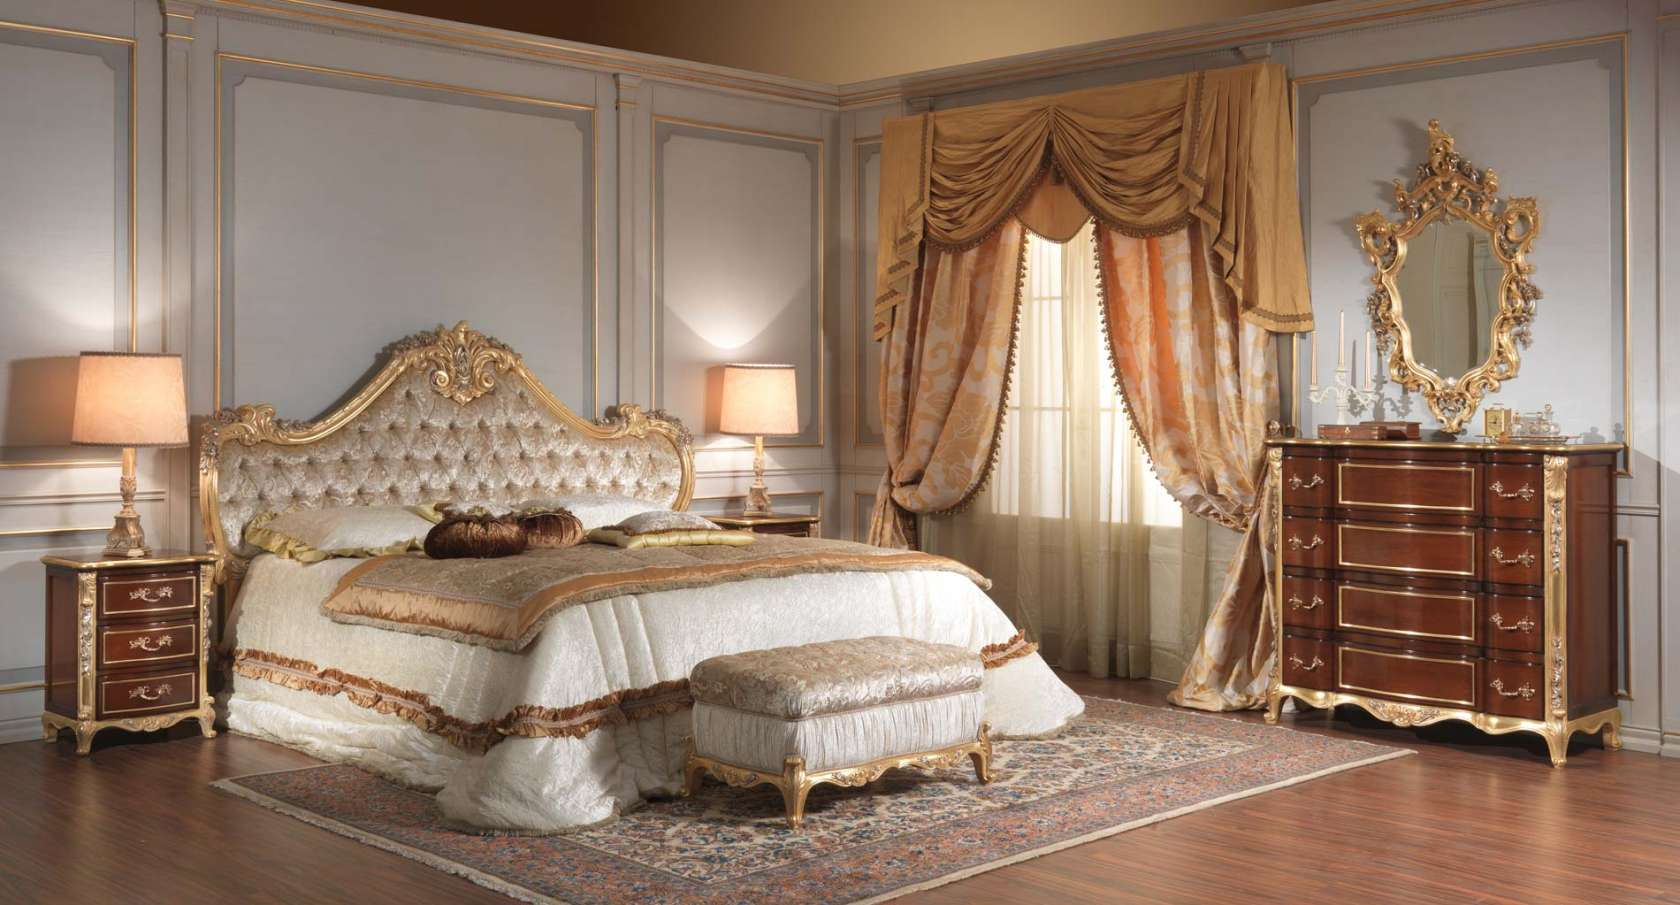 Classic italian 18th century bedroom vimercati classic for Ancient roman interior decoration